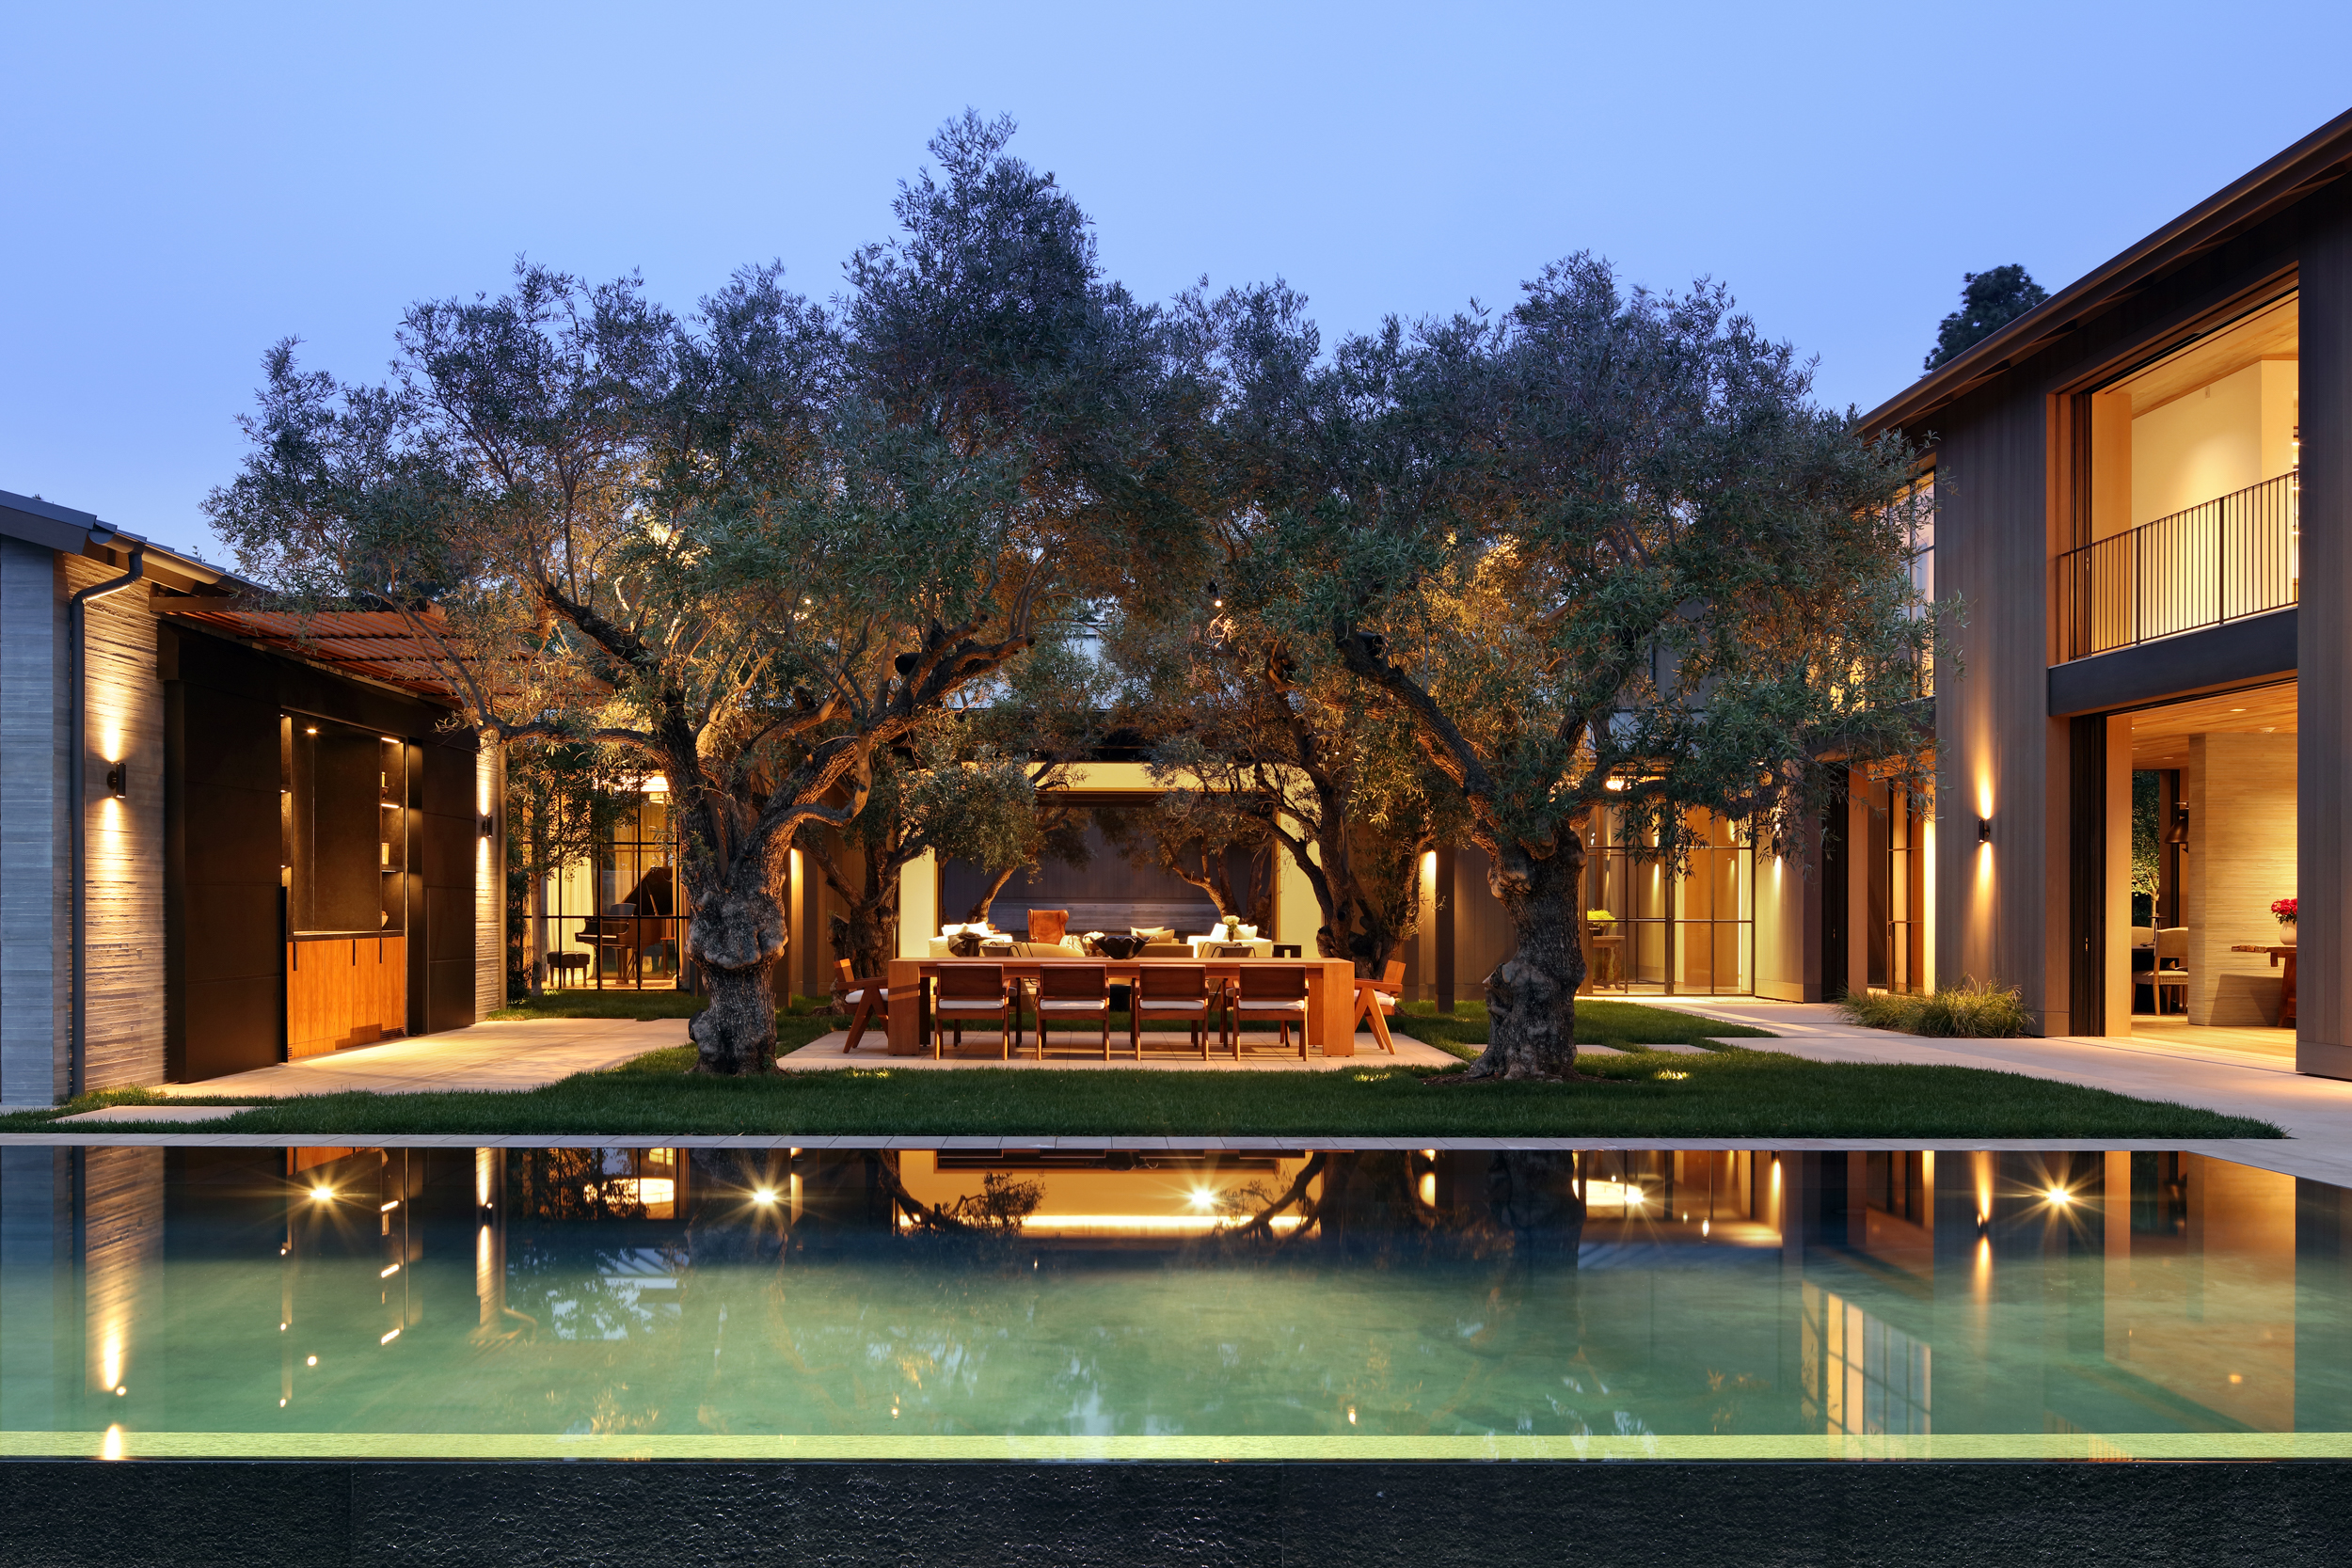 infinity pool in courtyard with olive trees